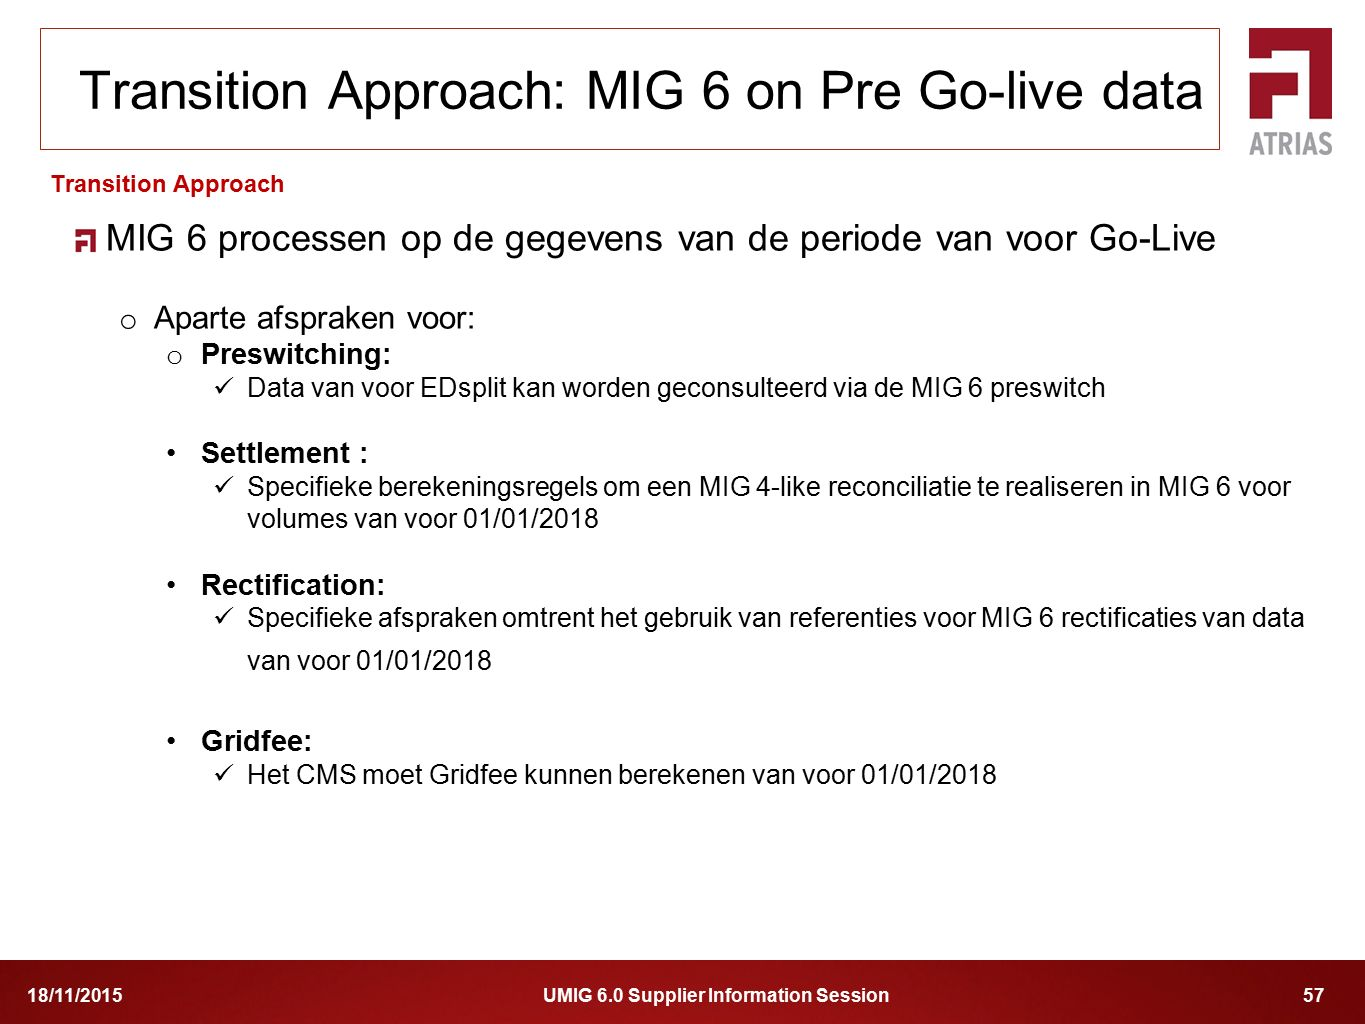 Transition Approach: MIG 6 on Pre Go-live data